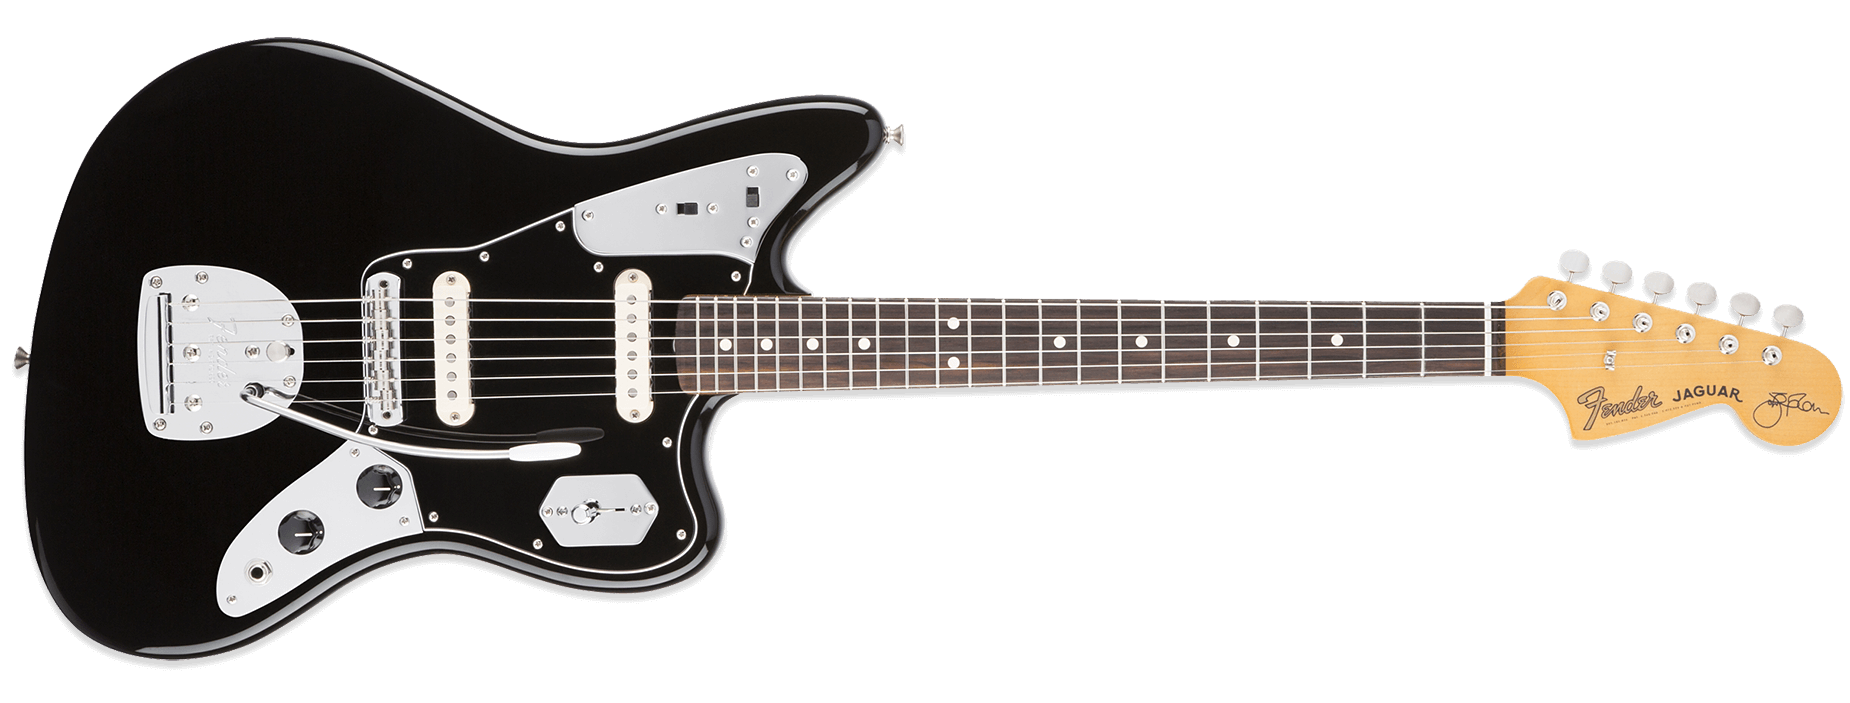 Fender Jonny Marr Jaguar Black